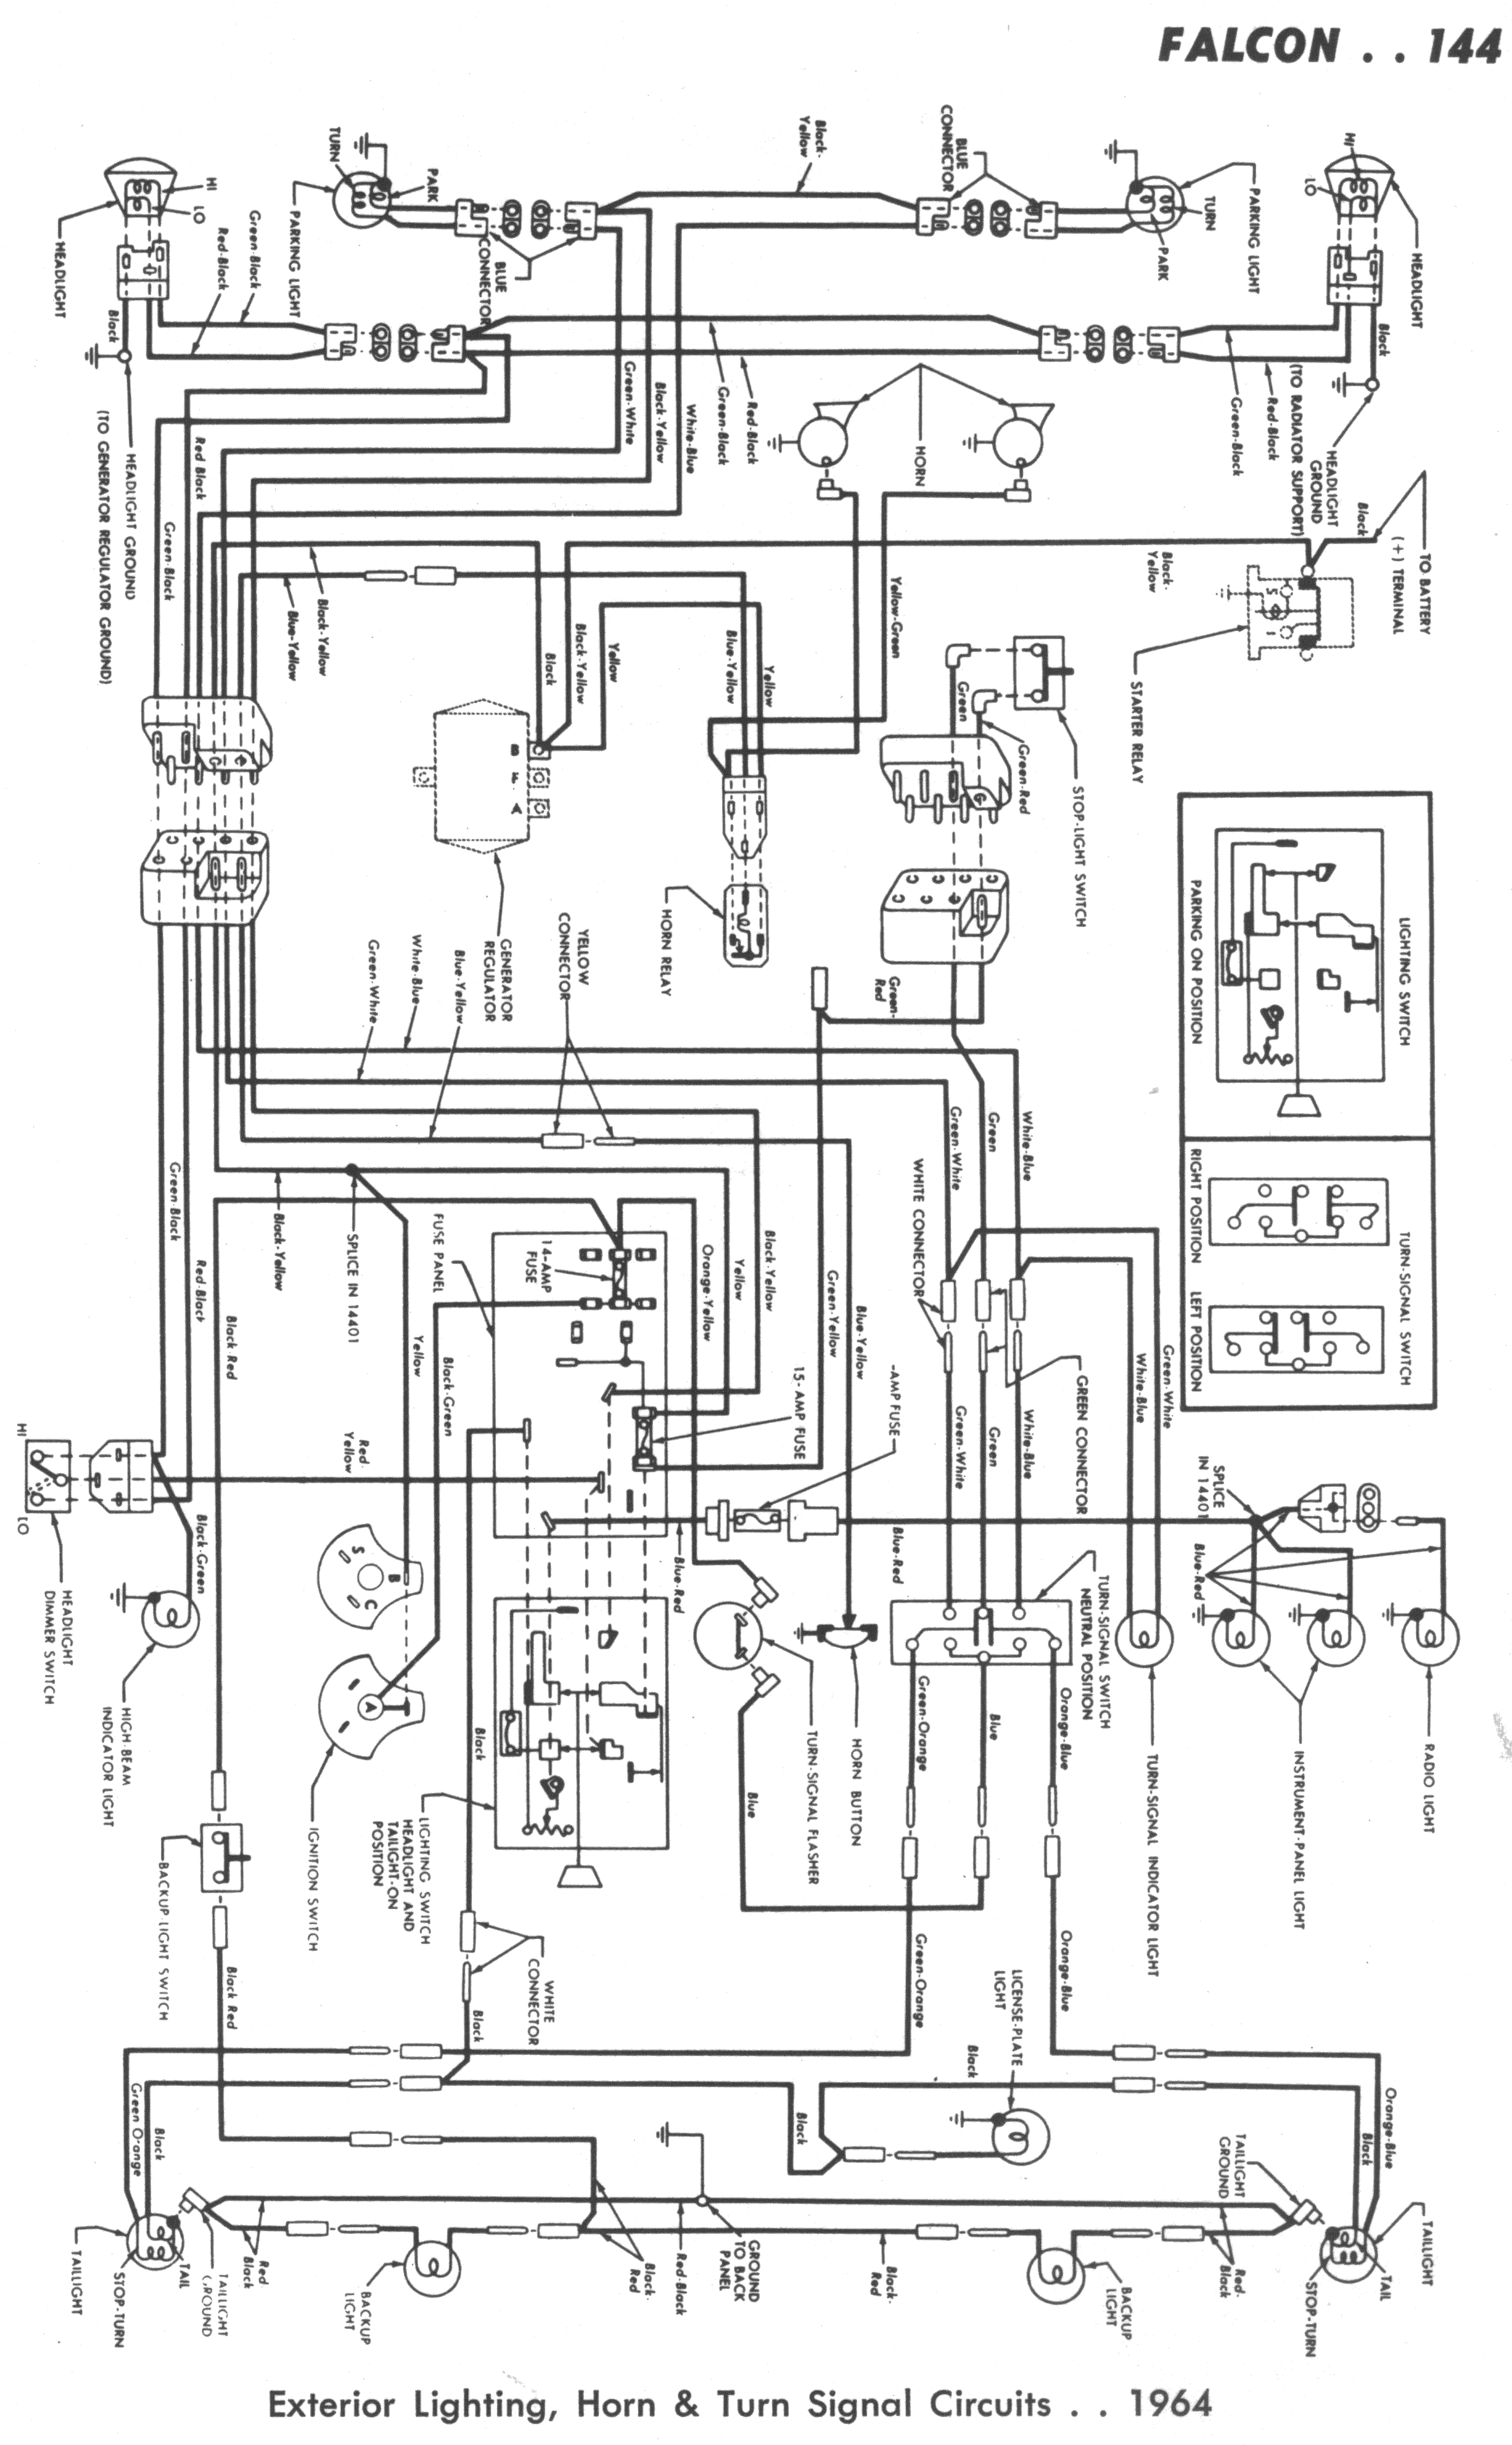 1962 ford falcon wiring diagram html